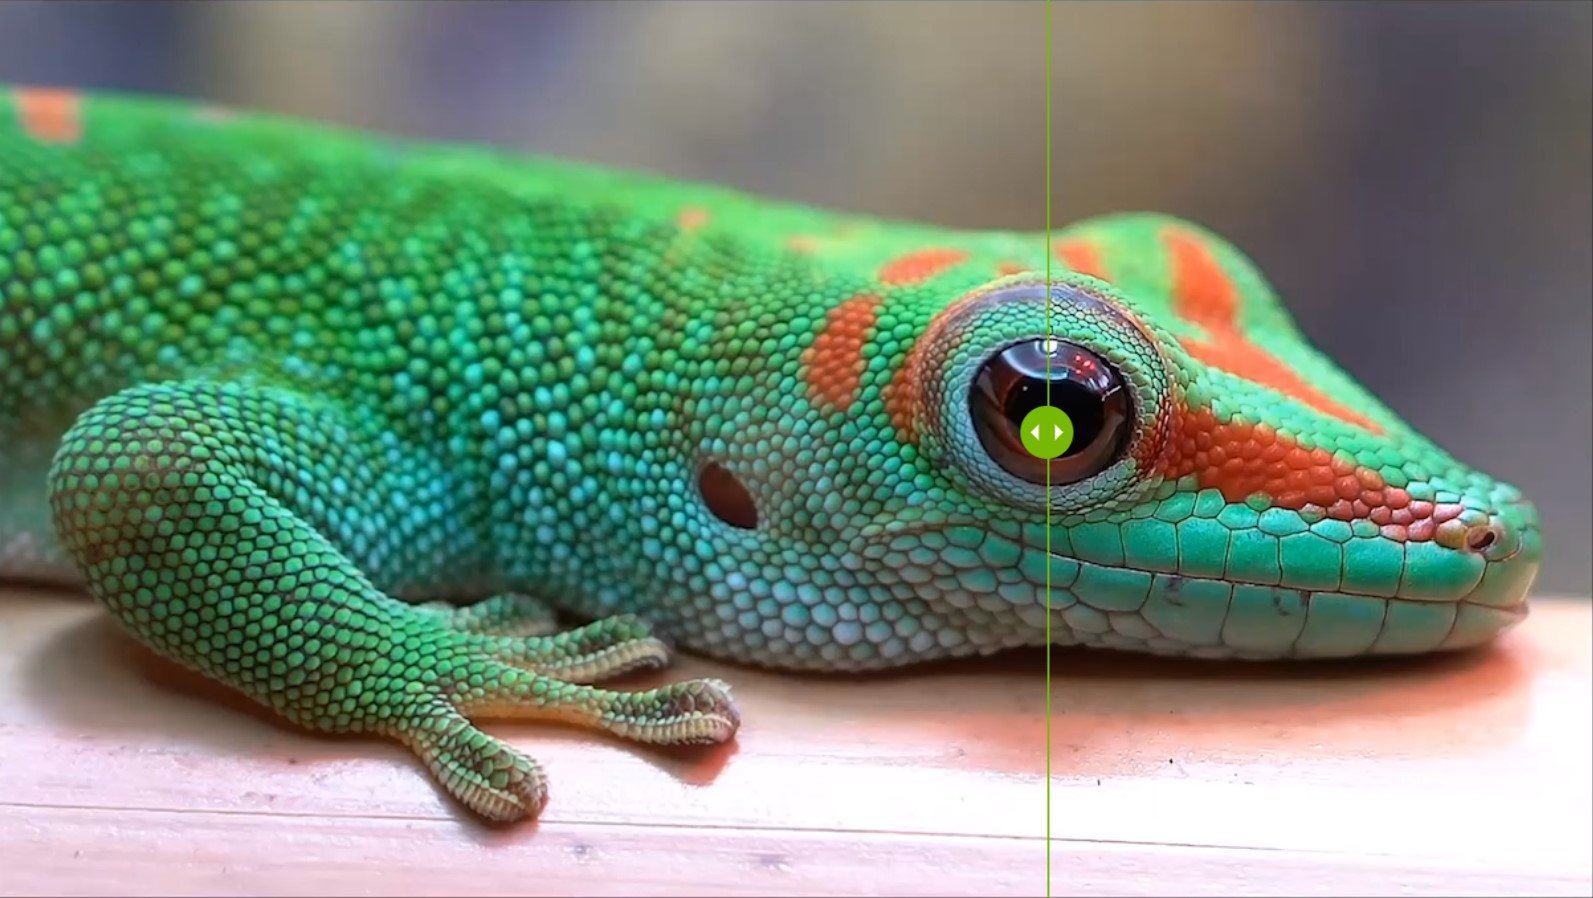 How to Upscale Video to 4K, 8K, and Beyond